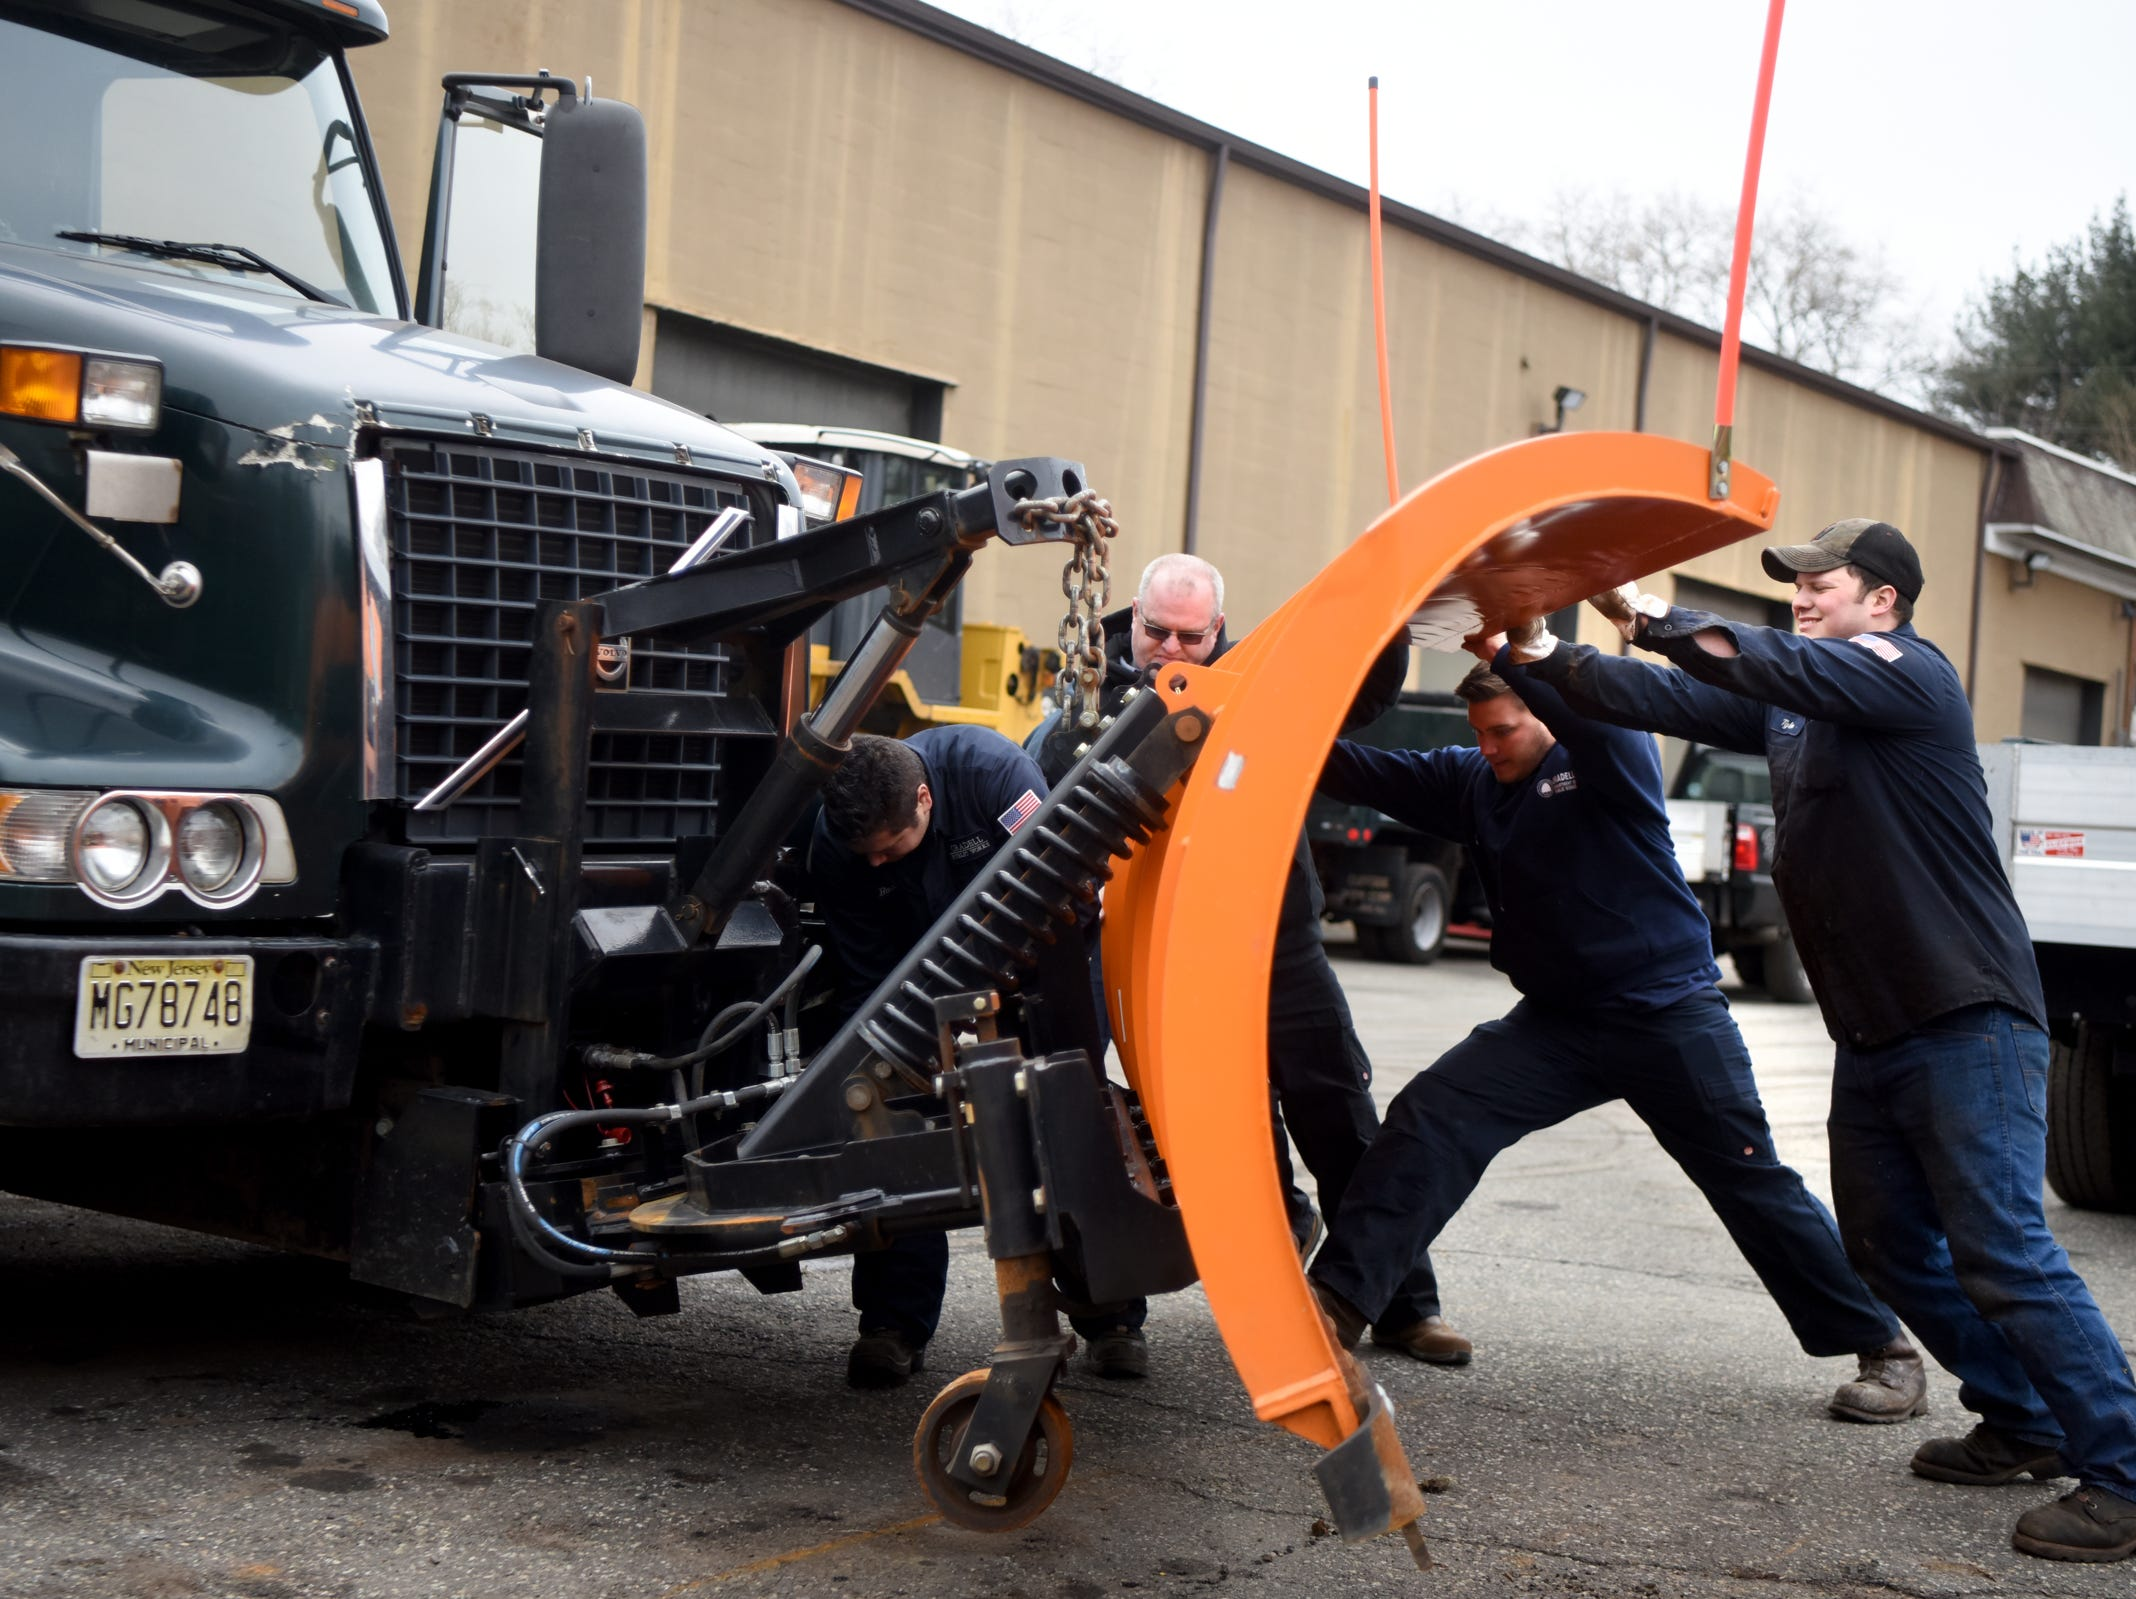 Borough of Oradell Department of Public Works Superintendent Dan Nywening, second from left, and DPW employees, from left, Ross Rhein, Gordon Kohles and Tyler Coss y Leon attach a snow plow to a truck on Monday, February 11, 2019 in preparation for a winter storm that could bring snow, ice and freezing rain on Tuesday.